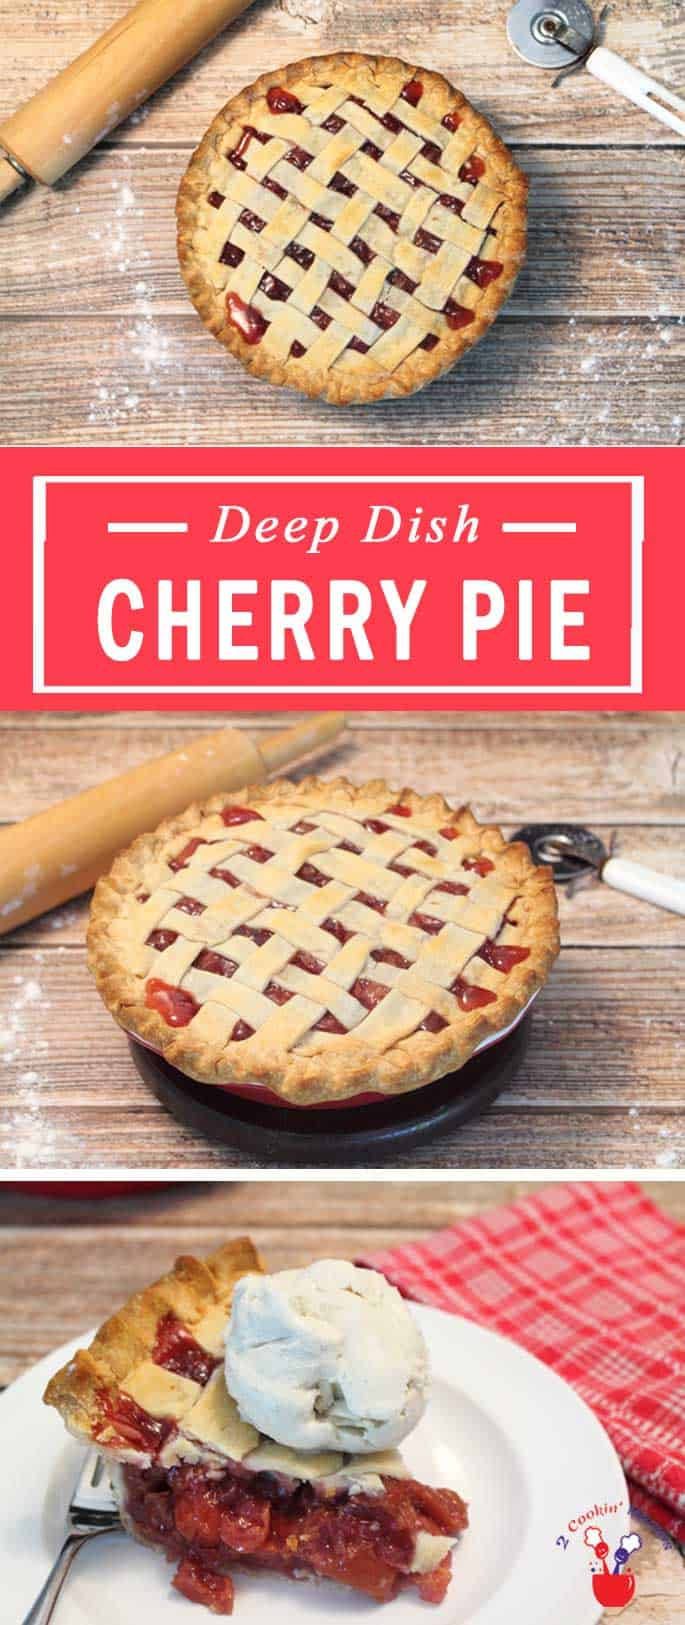 Nothing beats a homemade deep dish cherry pie! Fresh cherries with just the right amount of sweetness are nestled in a flaky buttery pie crust with a lattice top for the ultimate cherry lovers dessert. #cherrypie #pie #cherries #dessert #flakycrust #recipe